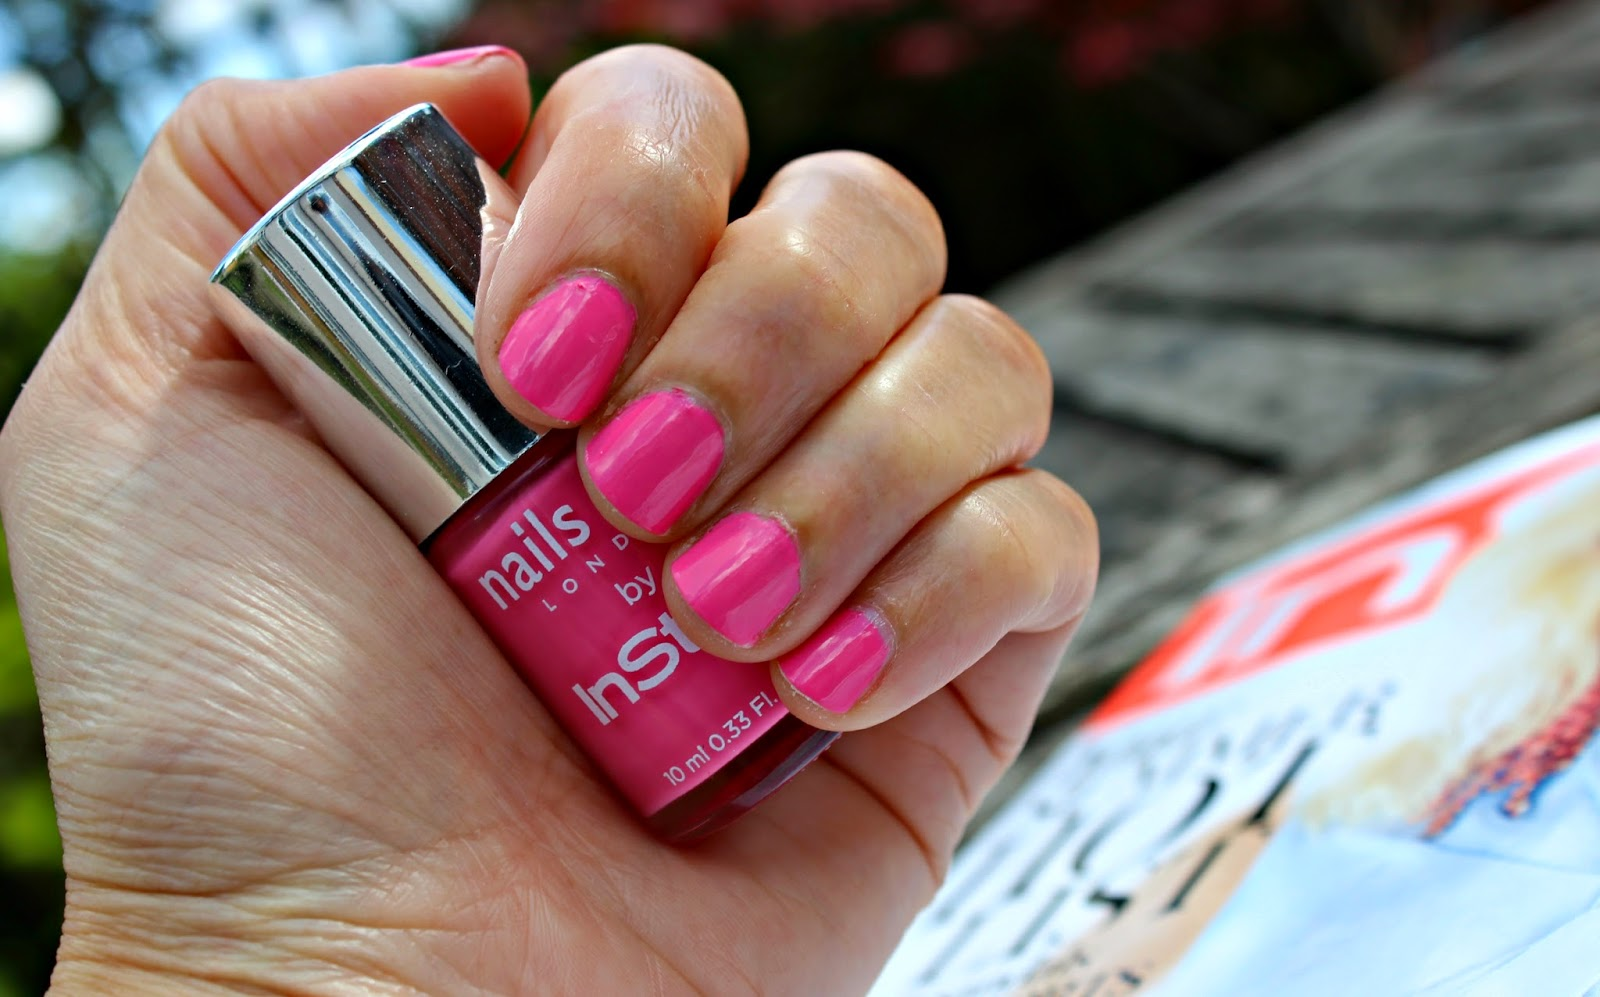 A picture of Nails Inc with June Instyle